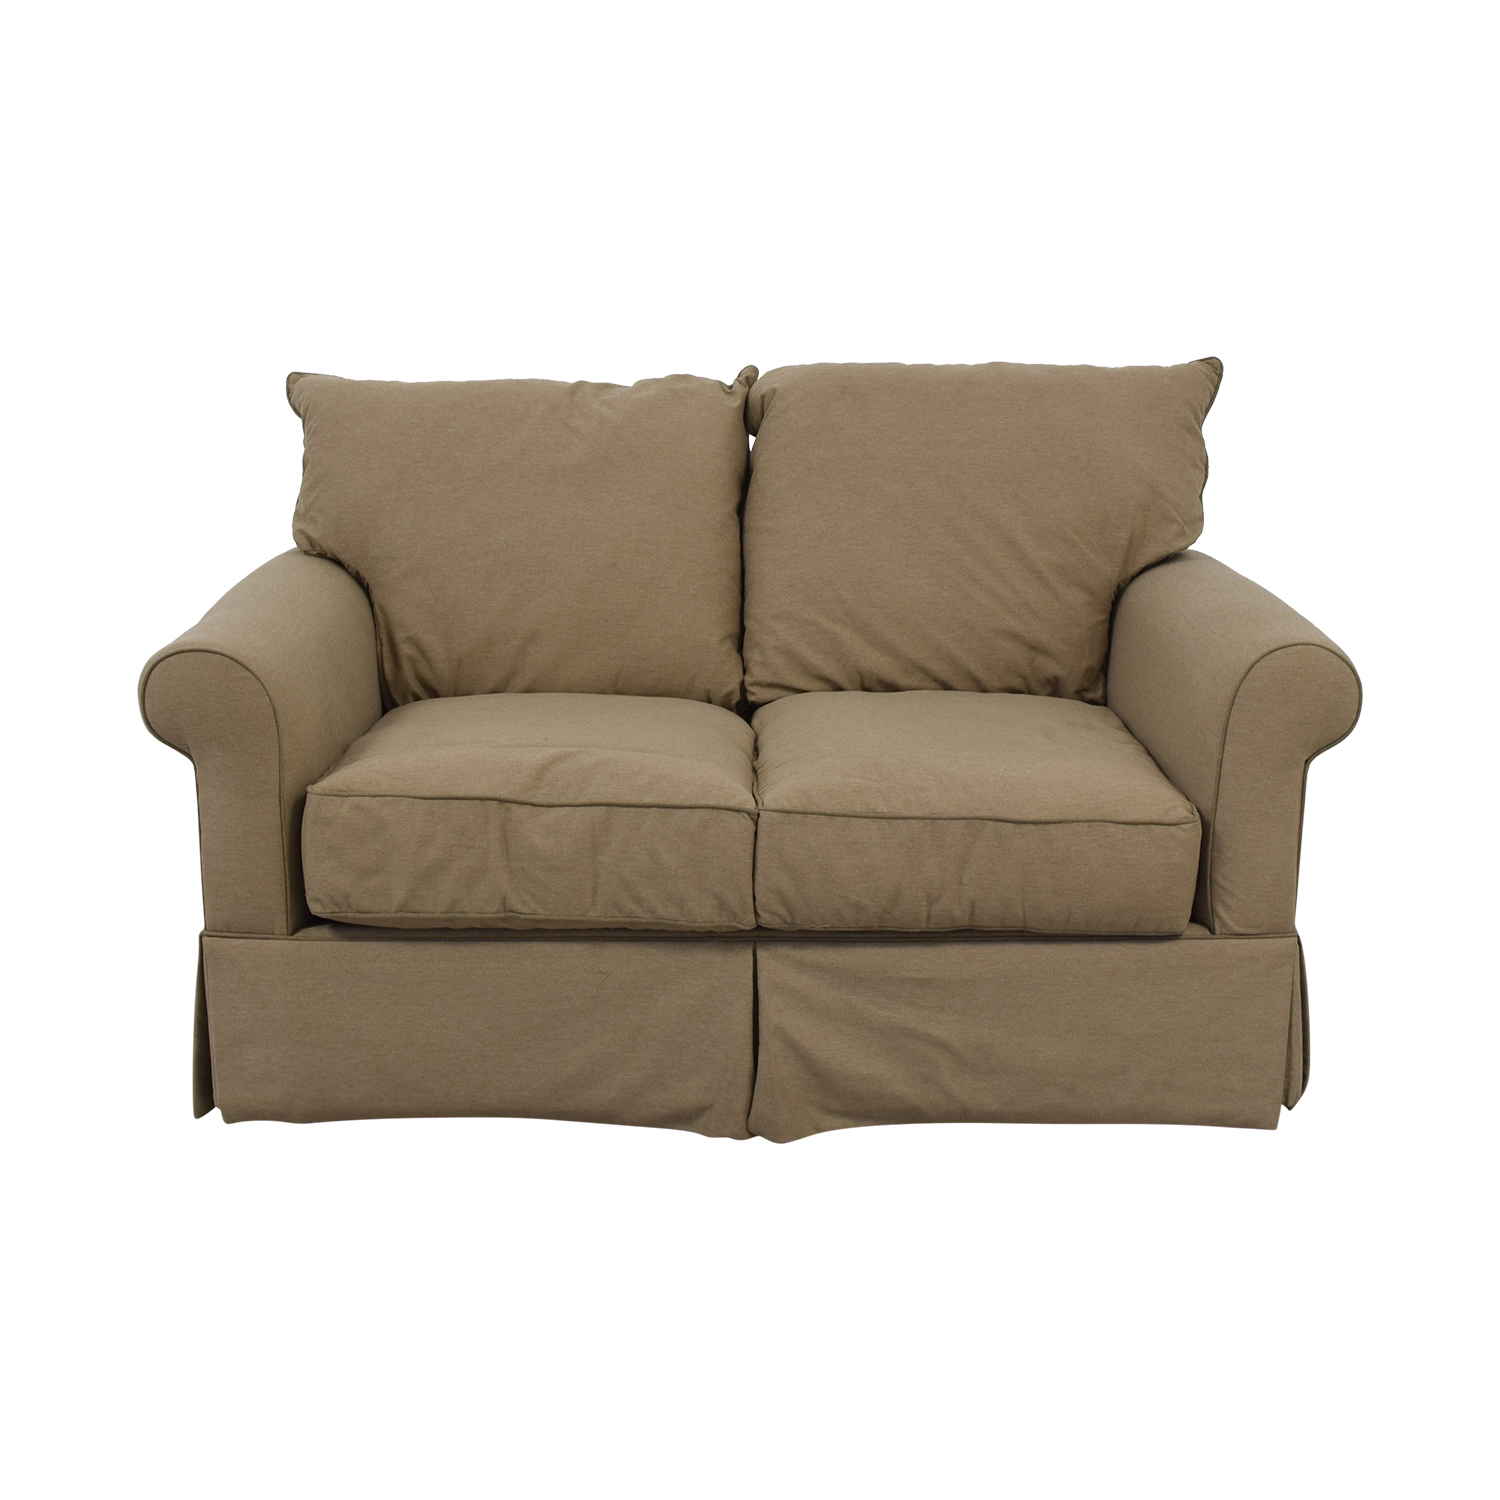 Macy's Macy's Beige Microfiber Two-Cushion Loveseat discount